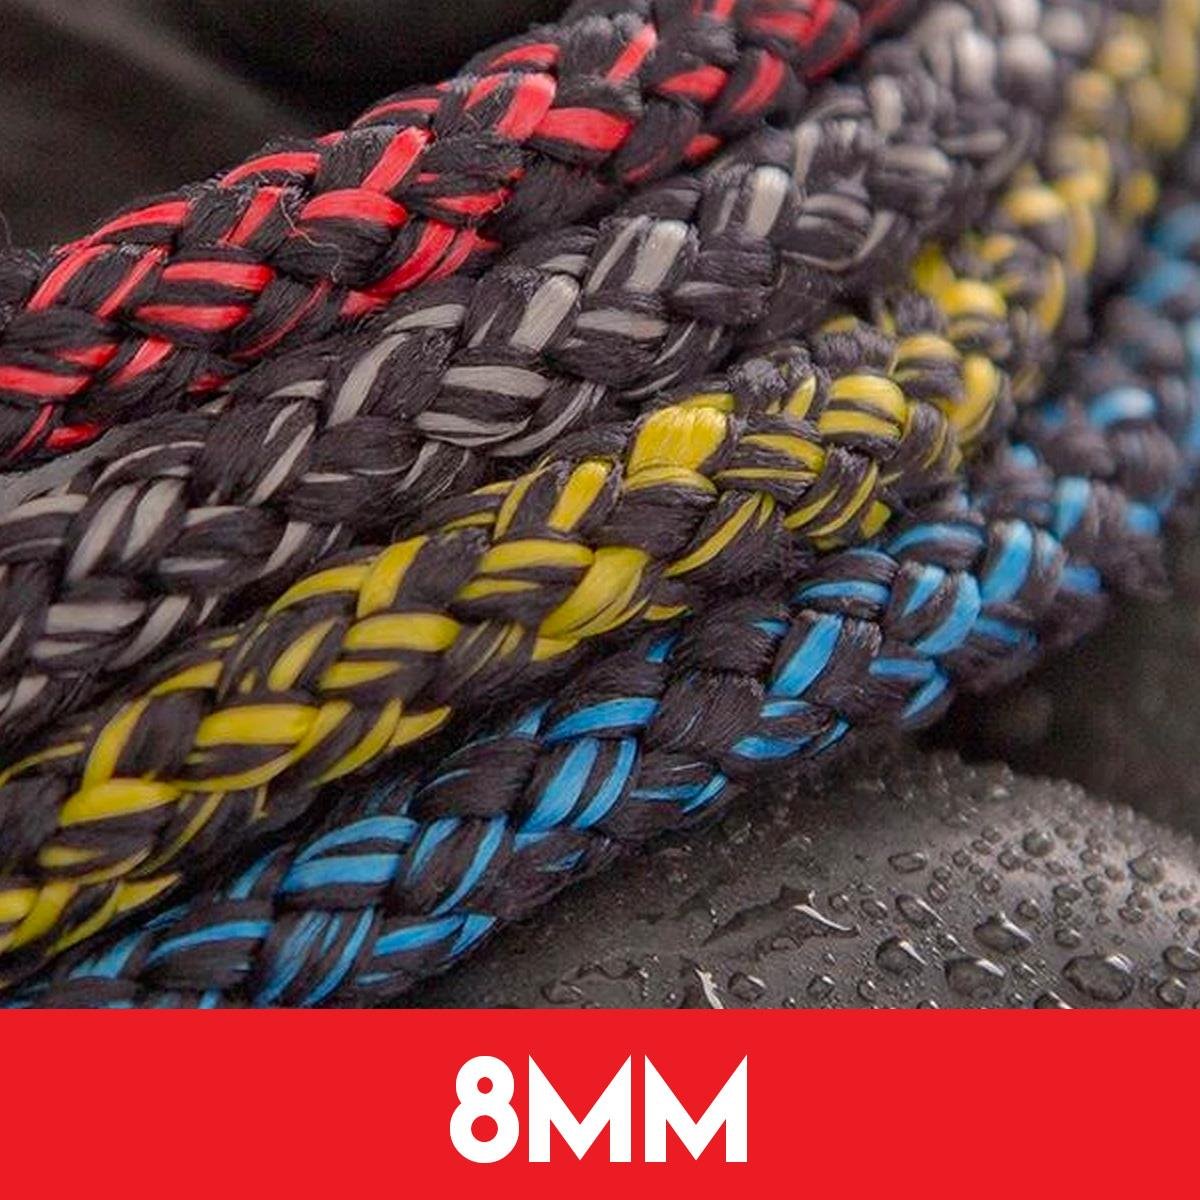 8mm Gottifredi Maffioli Swiftcord Rope